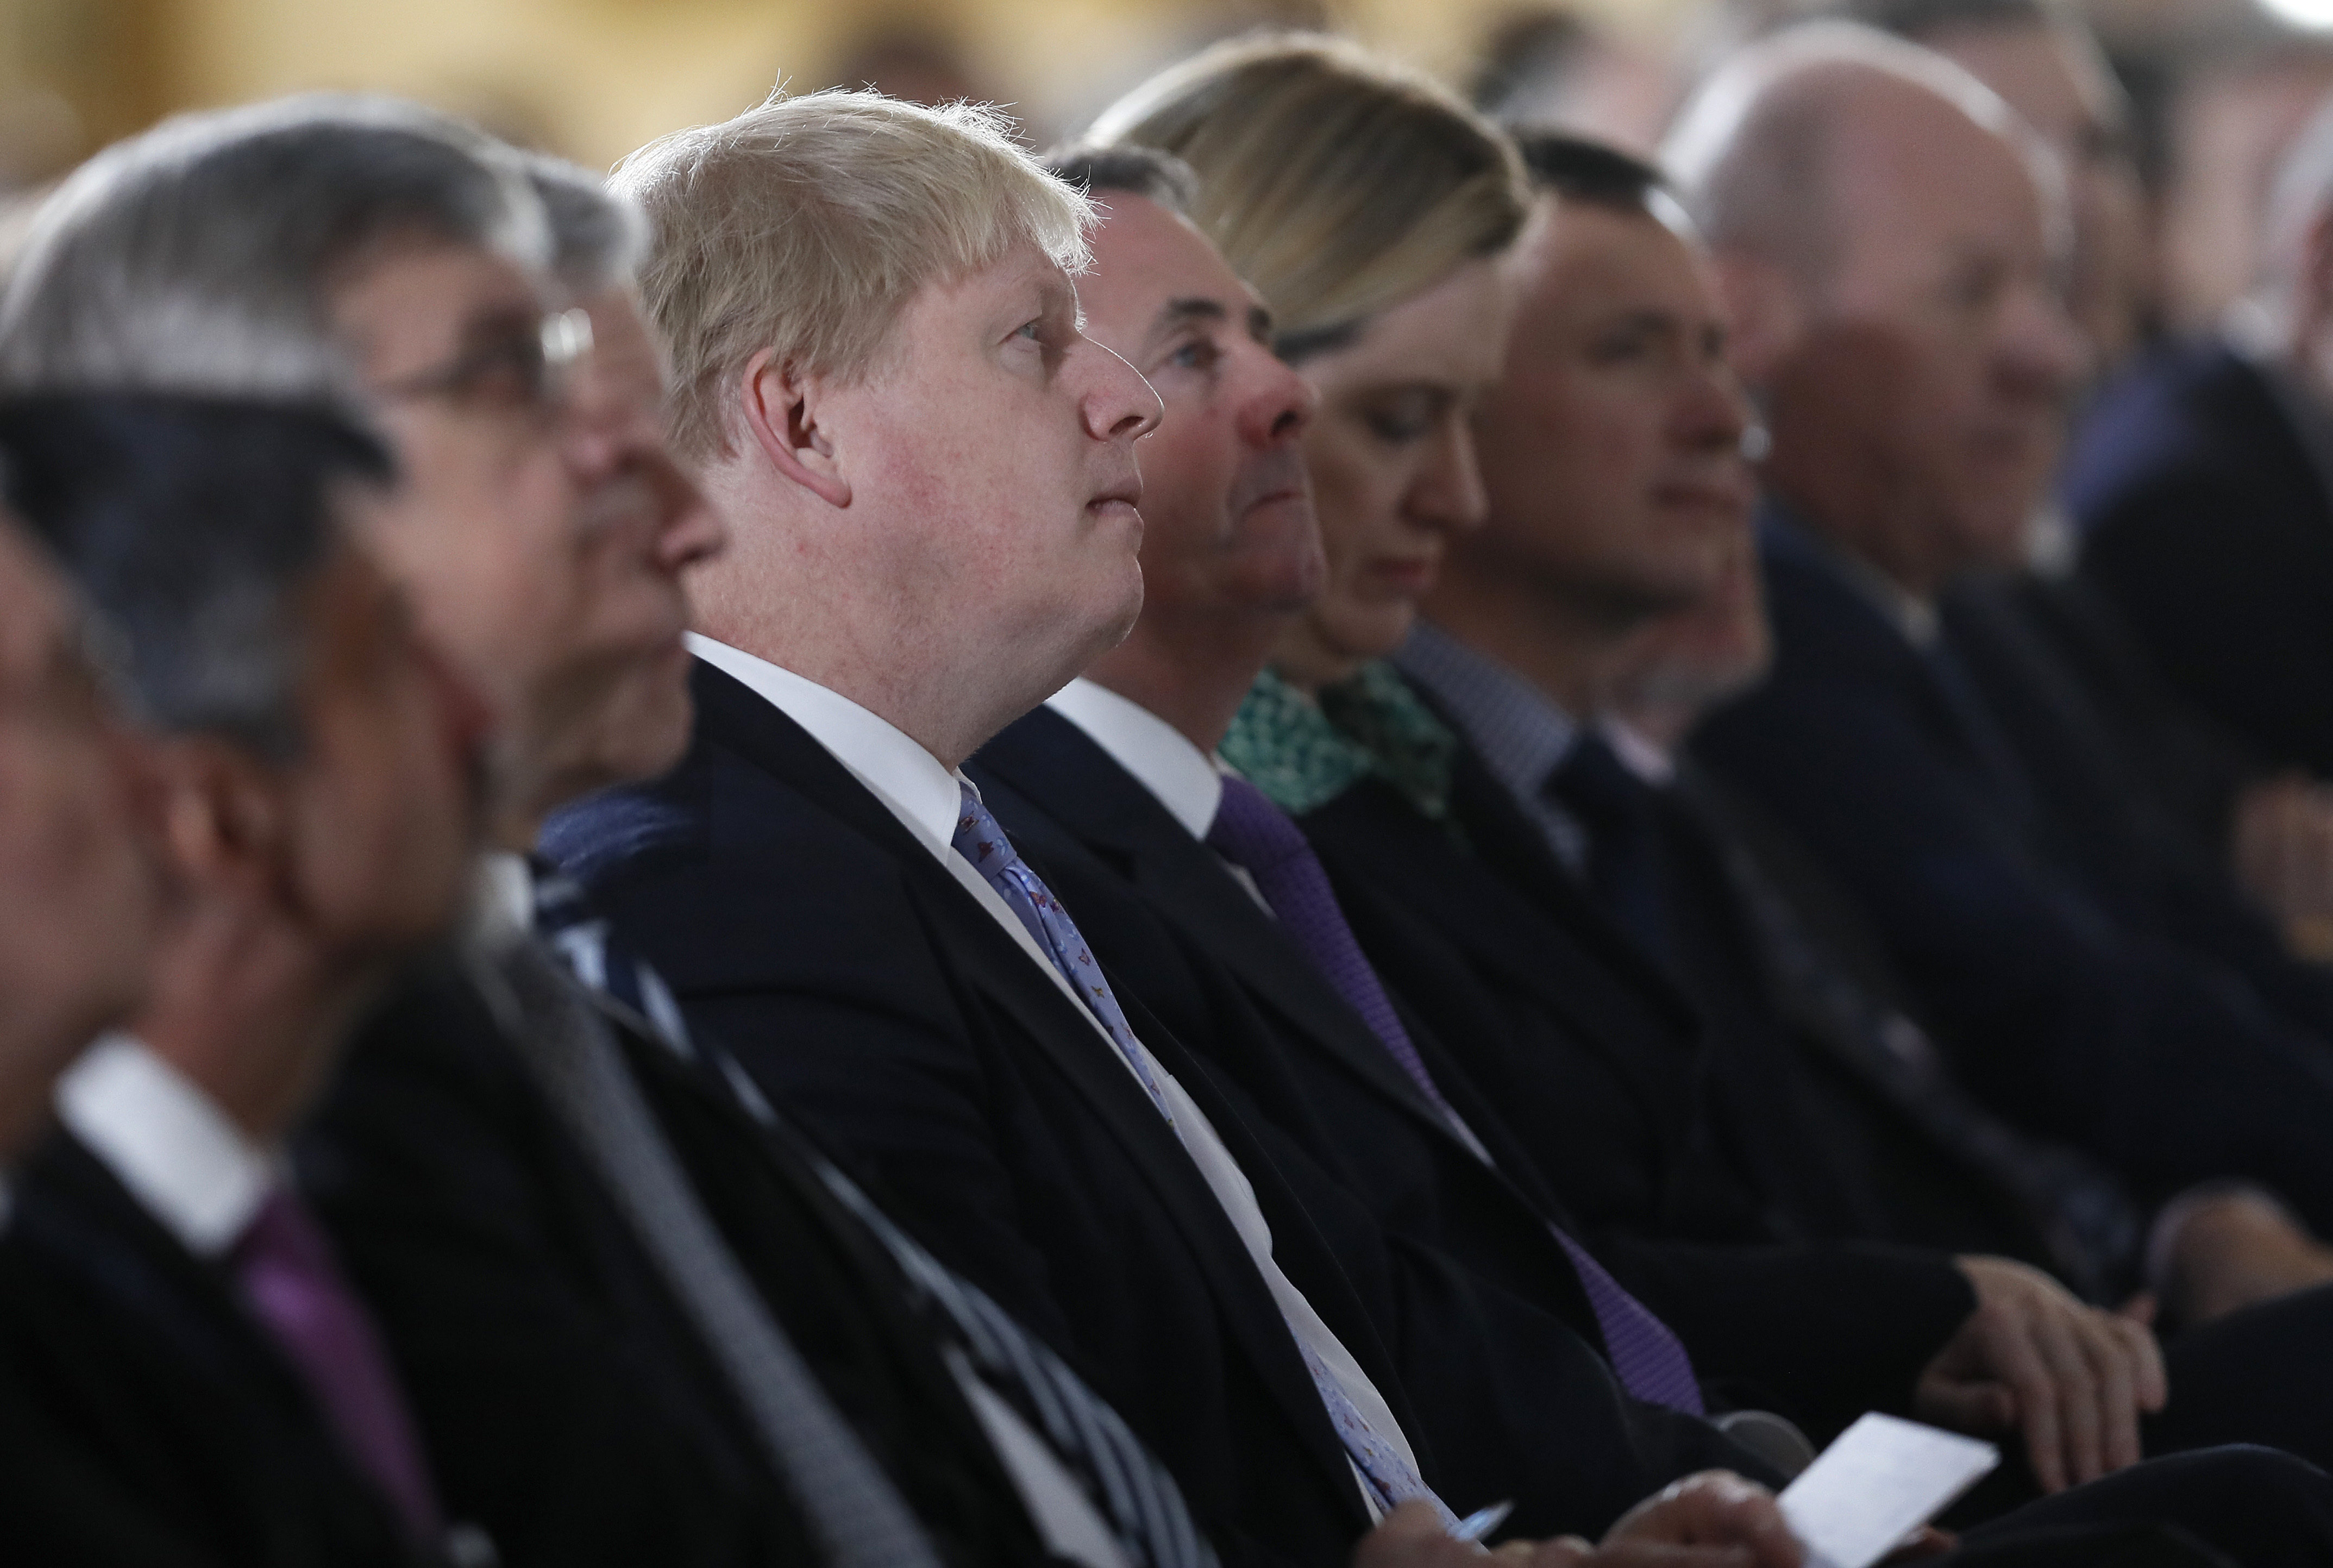 Britain's Foreign Secretary Boris Johnson (C) listens as Prime Minister Theresa May delivers a speech on leaving the European Union at Lancaster House in London on Jan. 17, 2017. (AP Photo/Kirsty Wigglesworth, pool)